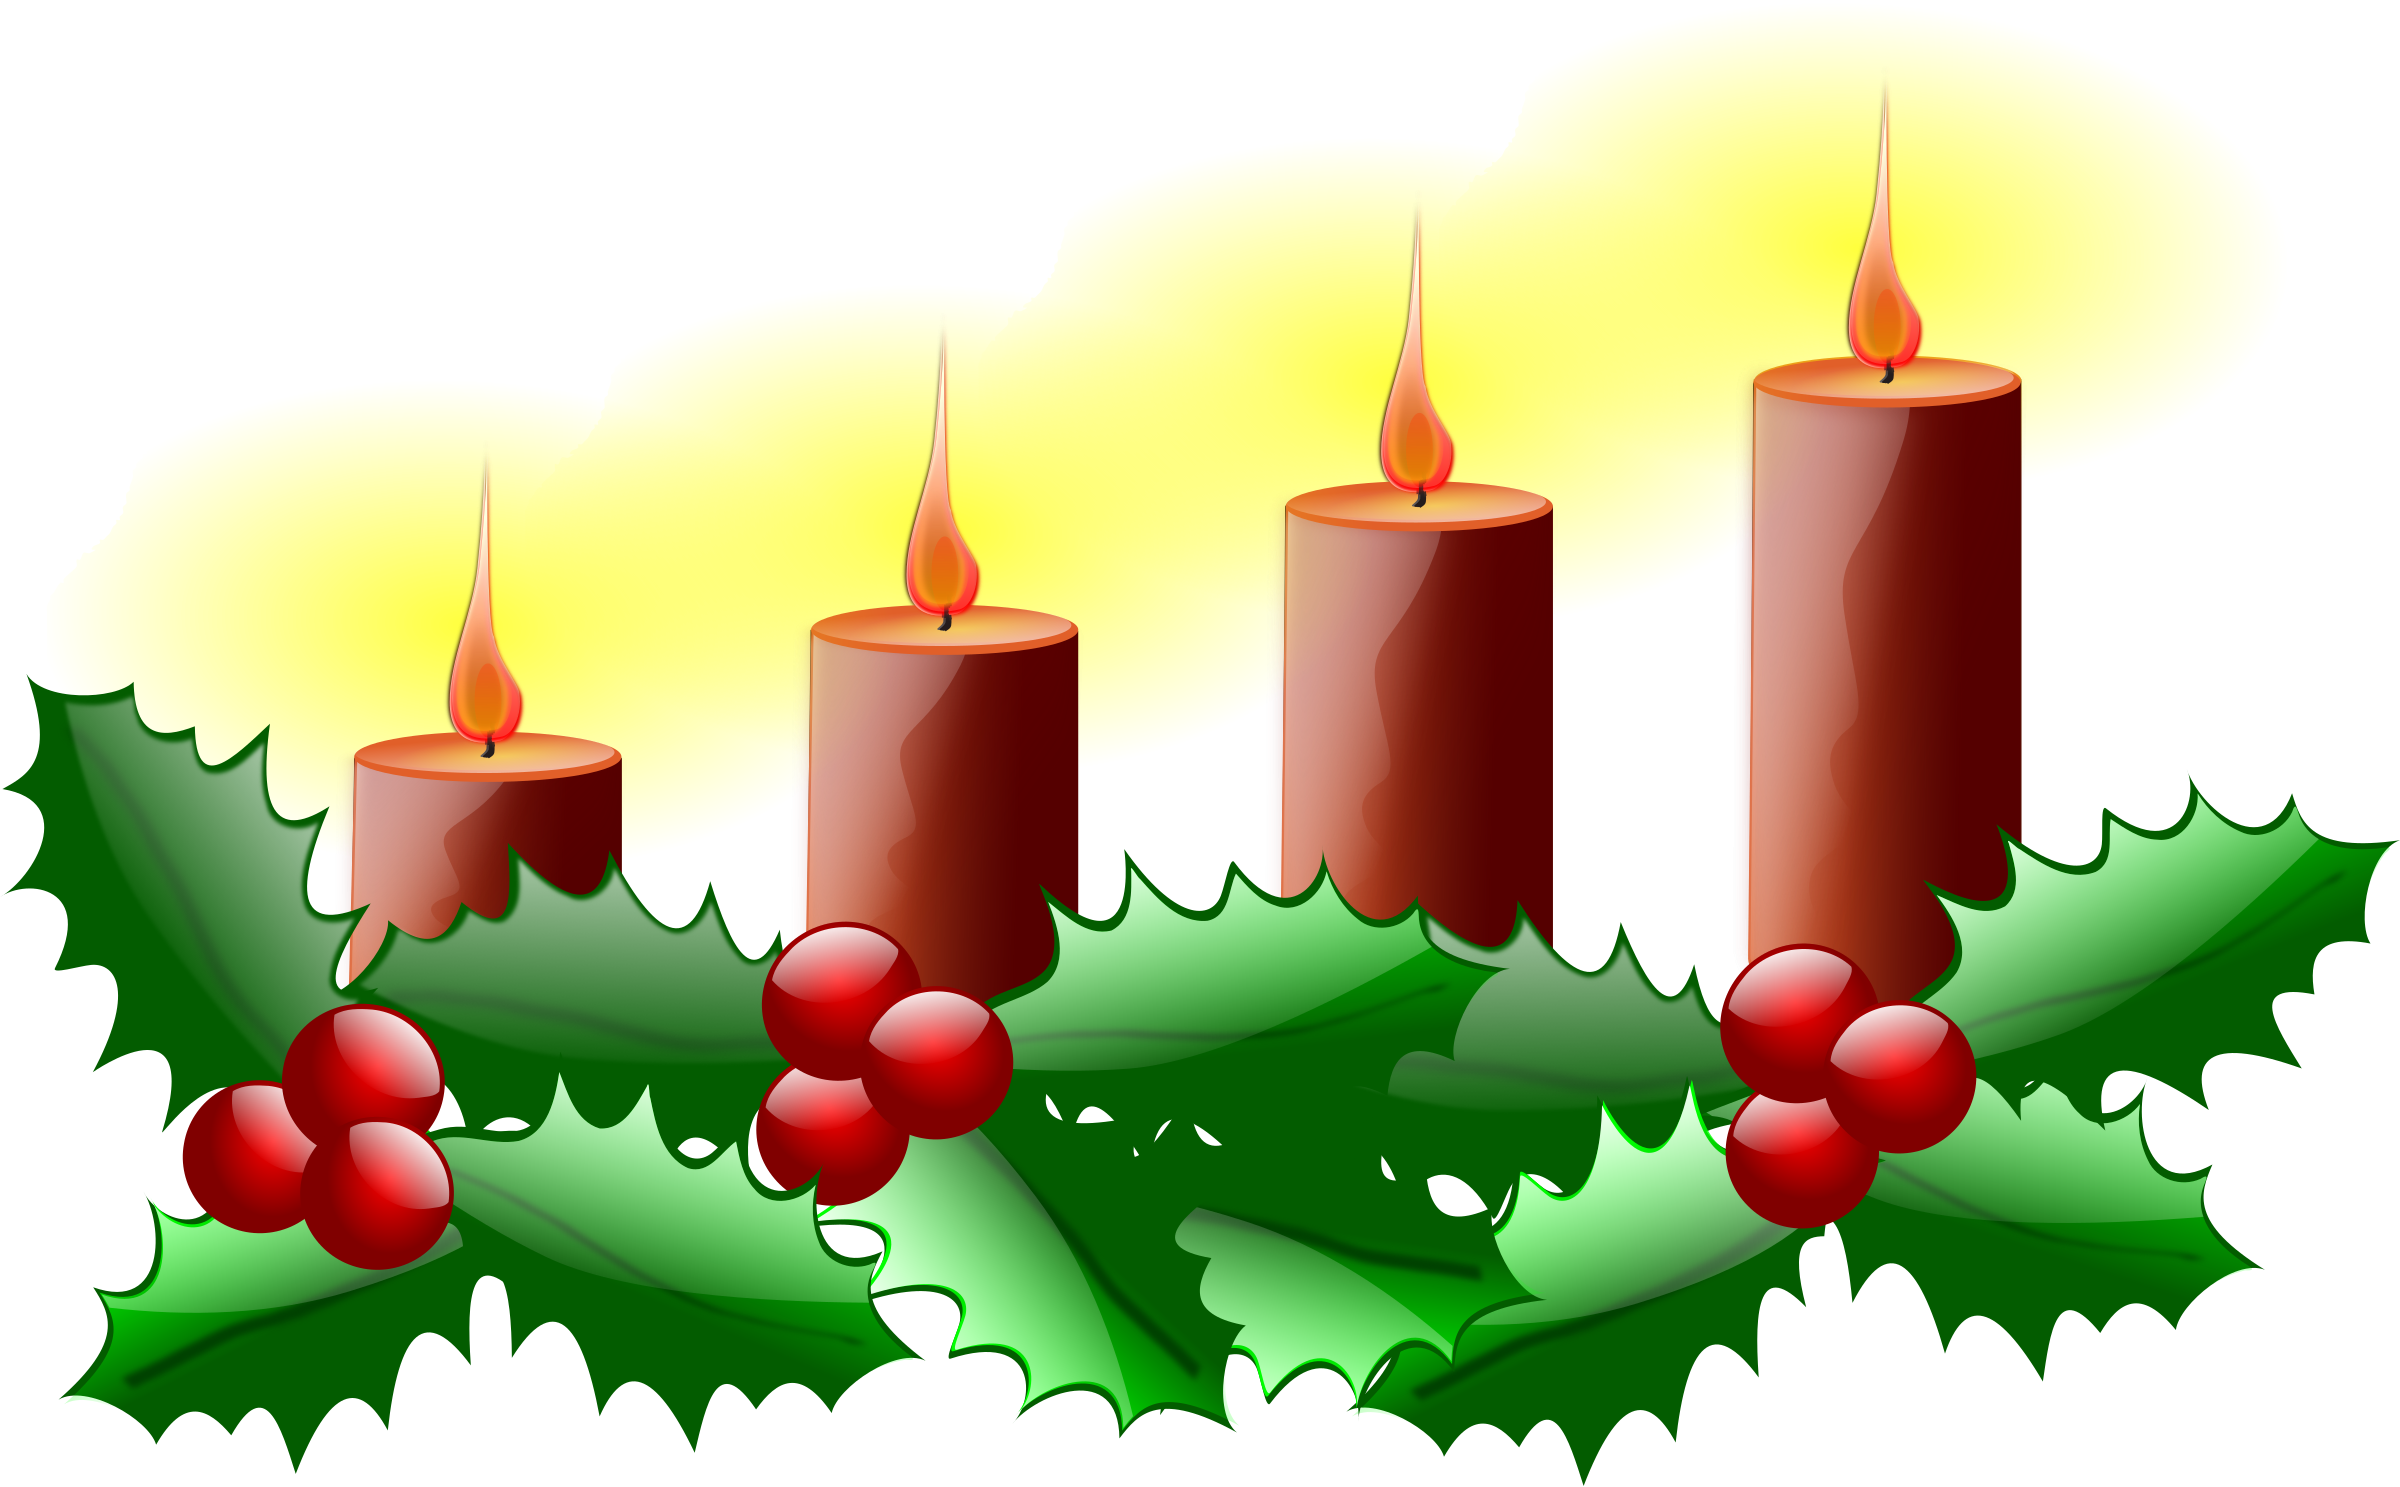 Fourth Sunday Of Advent Advent Candles Third Sunday Of Advent First Sunday Of Advent